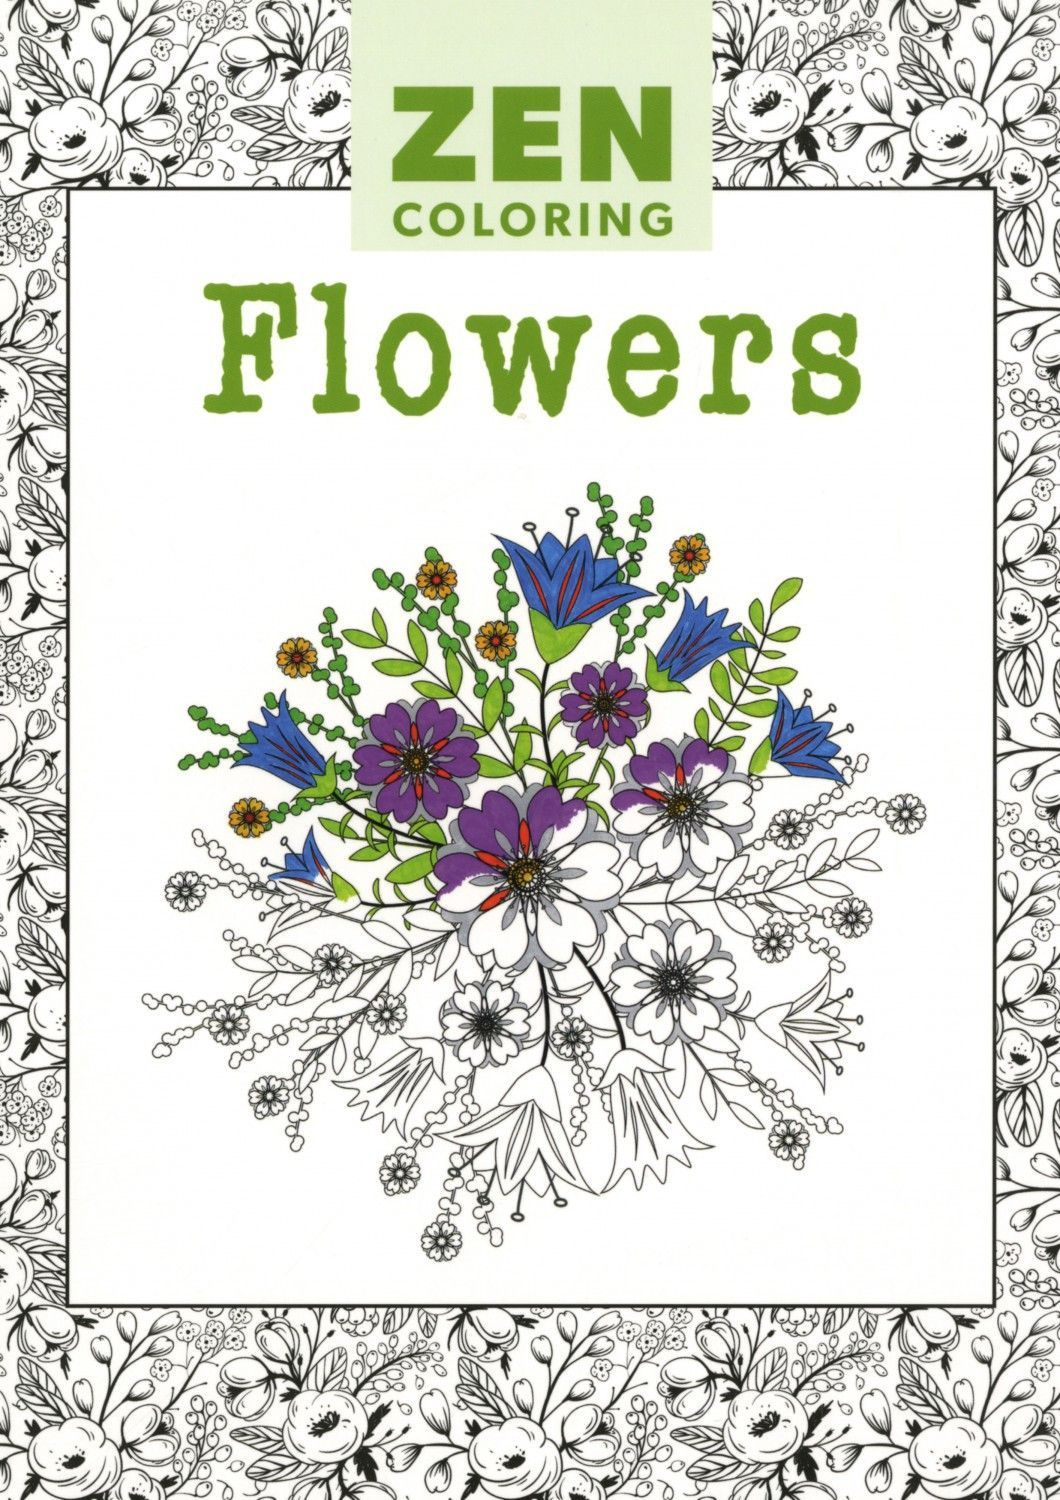 Zen ocean colouring book - Zen Flowers Adult Coloring Book Relax Into The Creative World Of Coloring Containing A